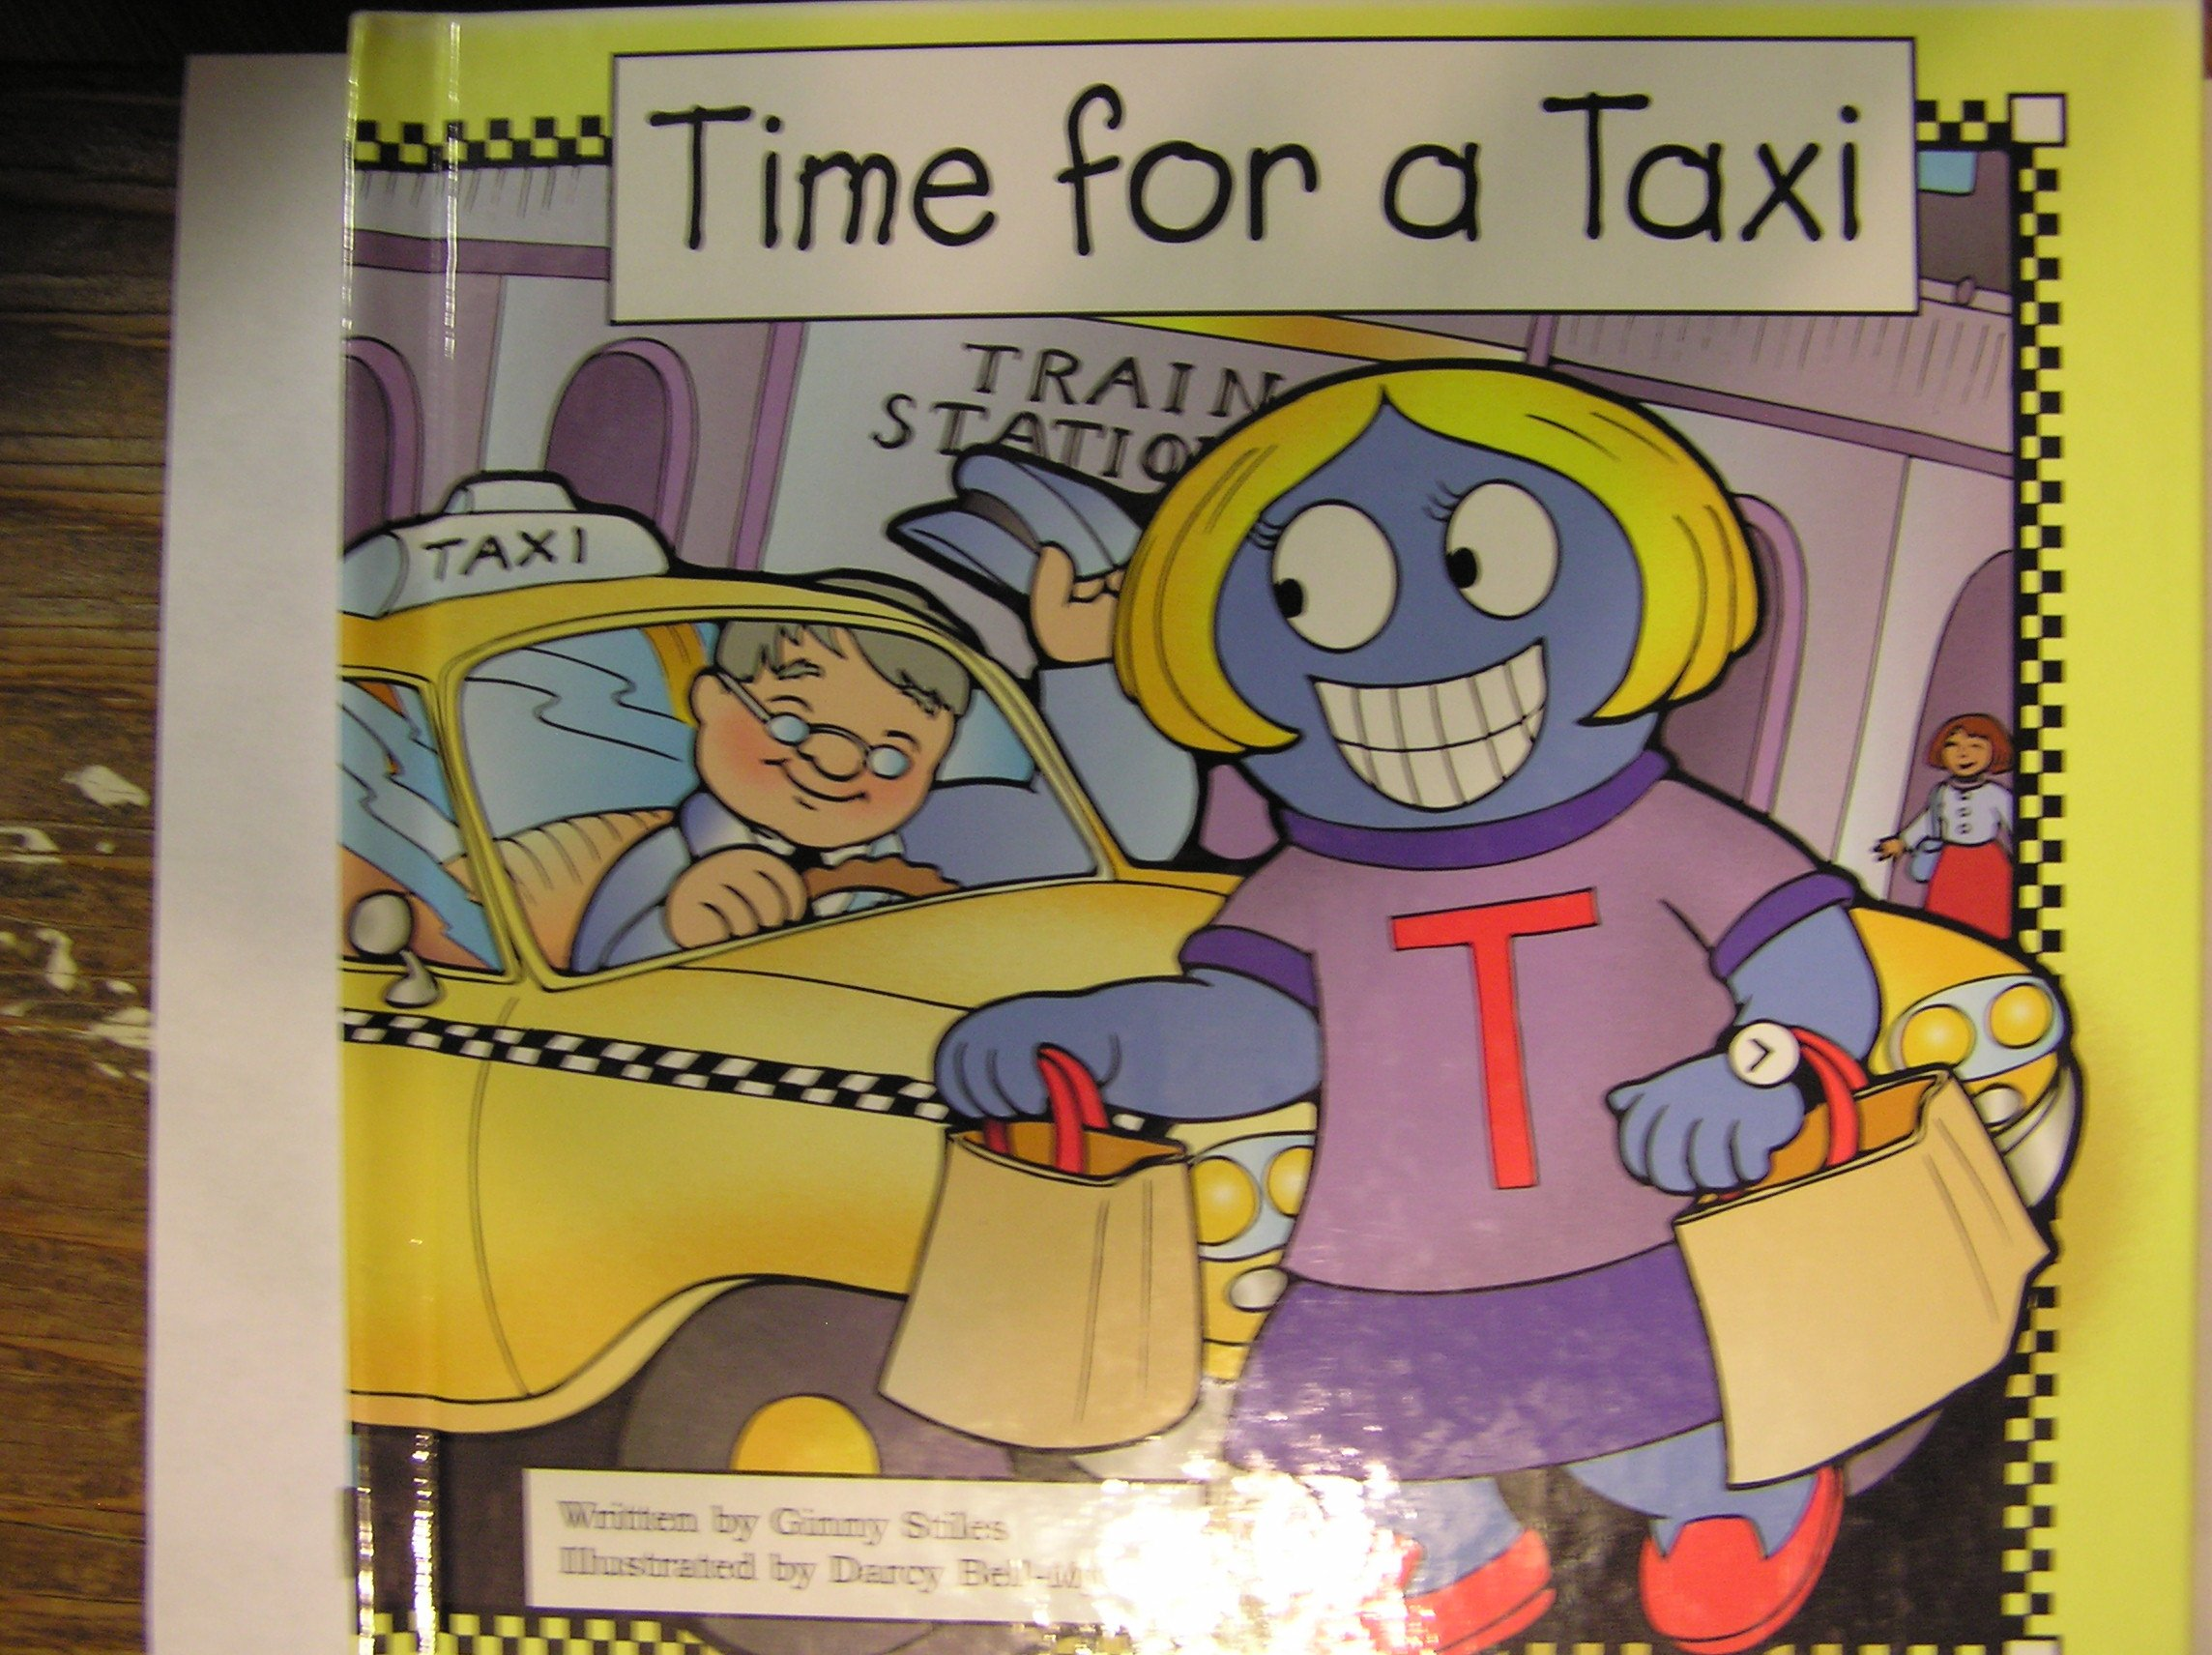 Time For A Taxi Ginny Stiles 9780766512207 Amazon Com Books